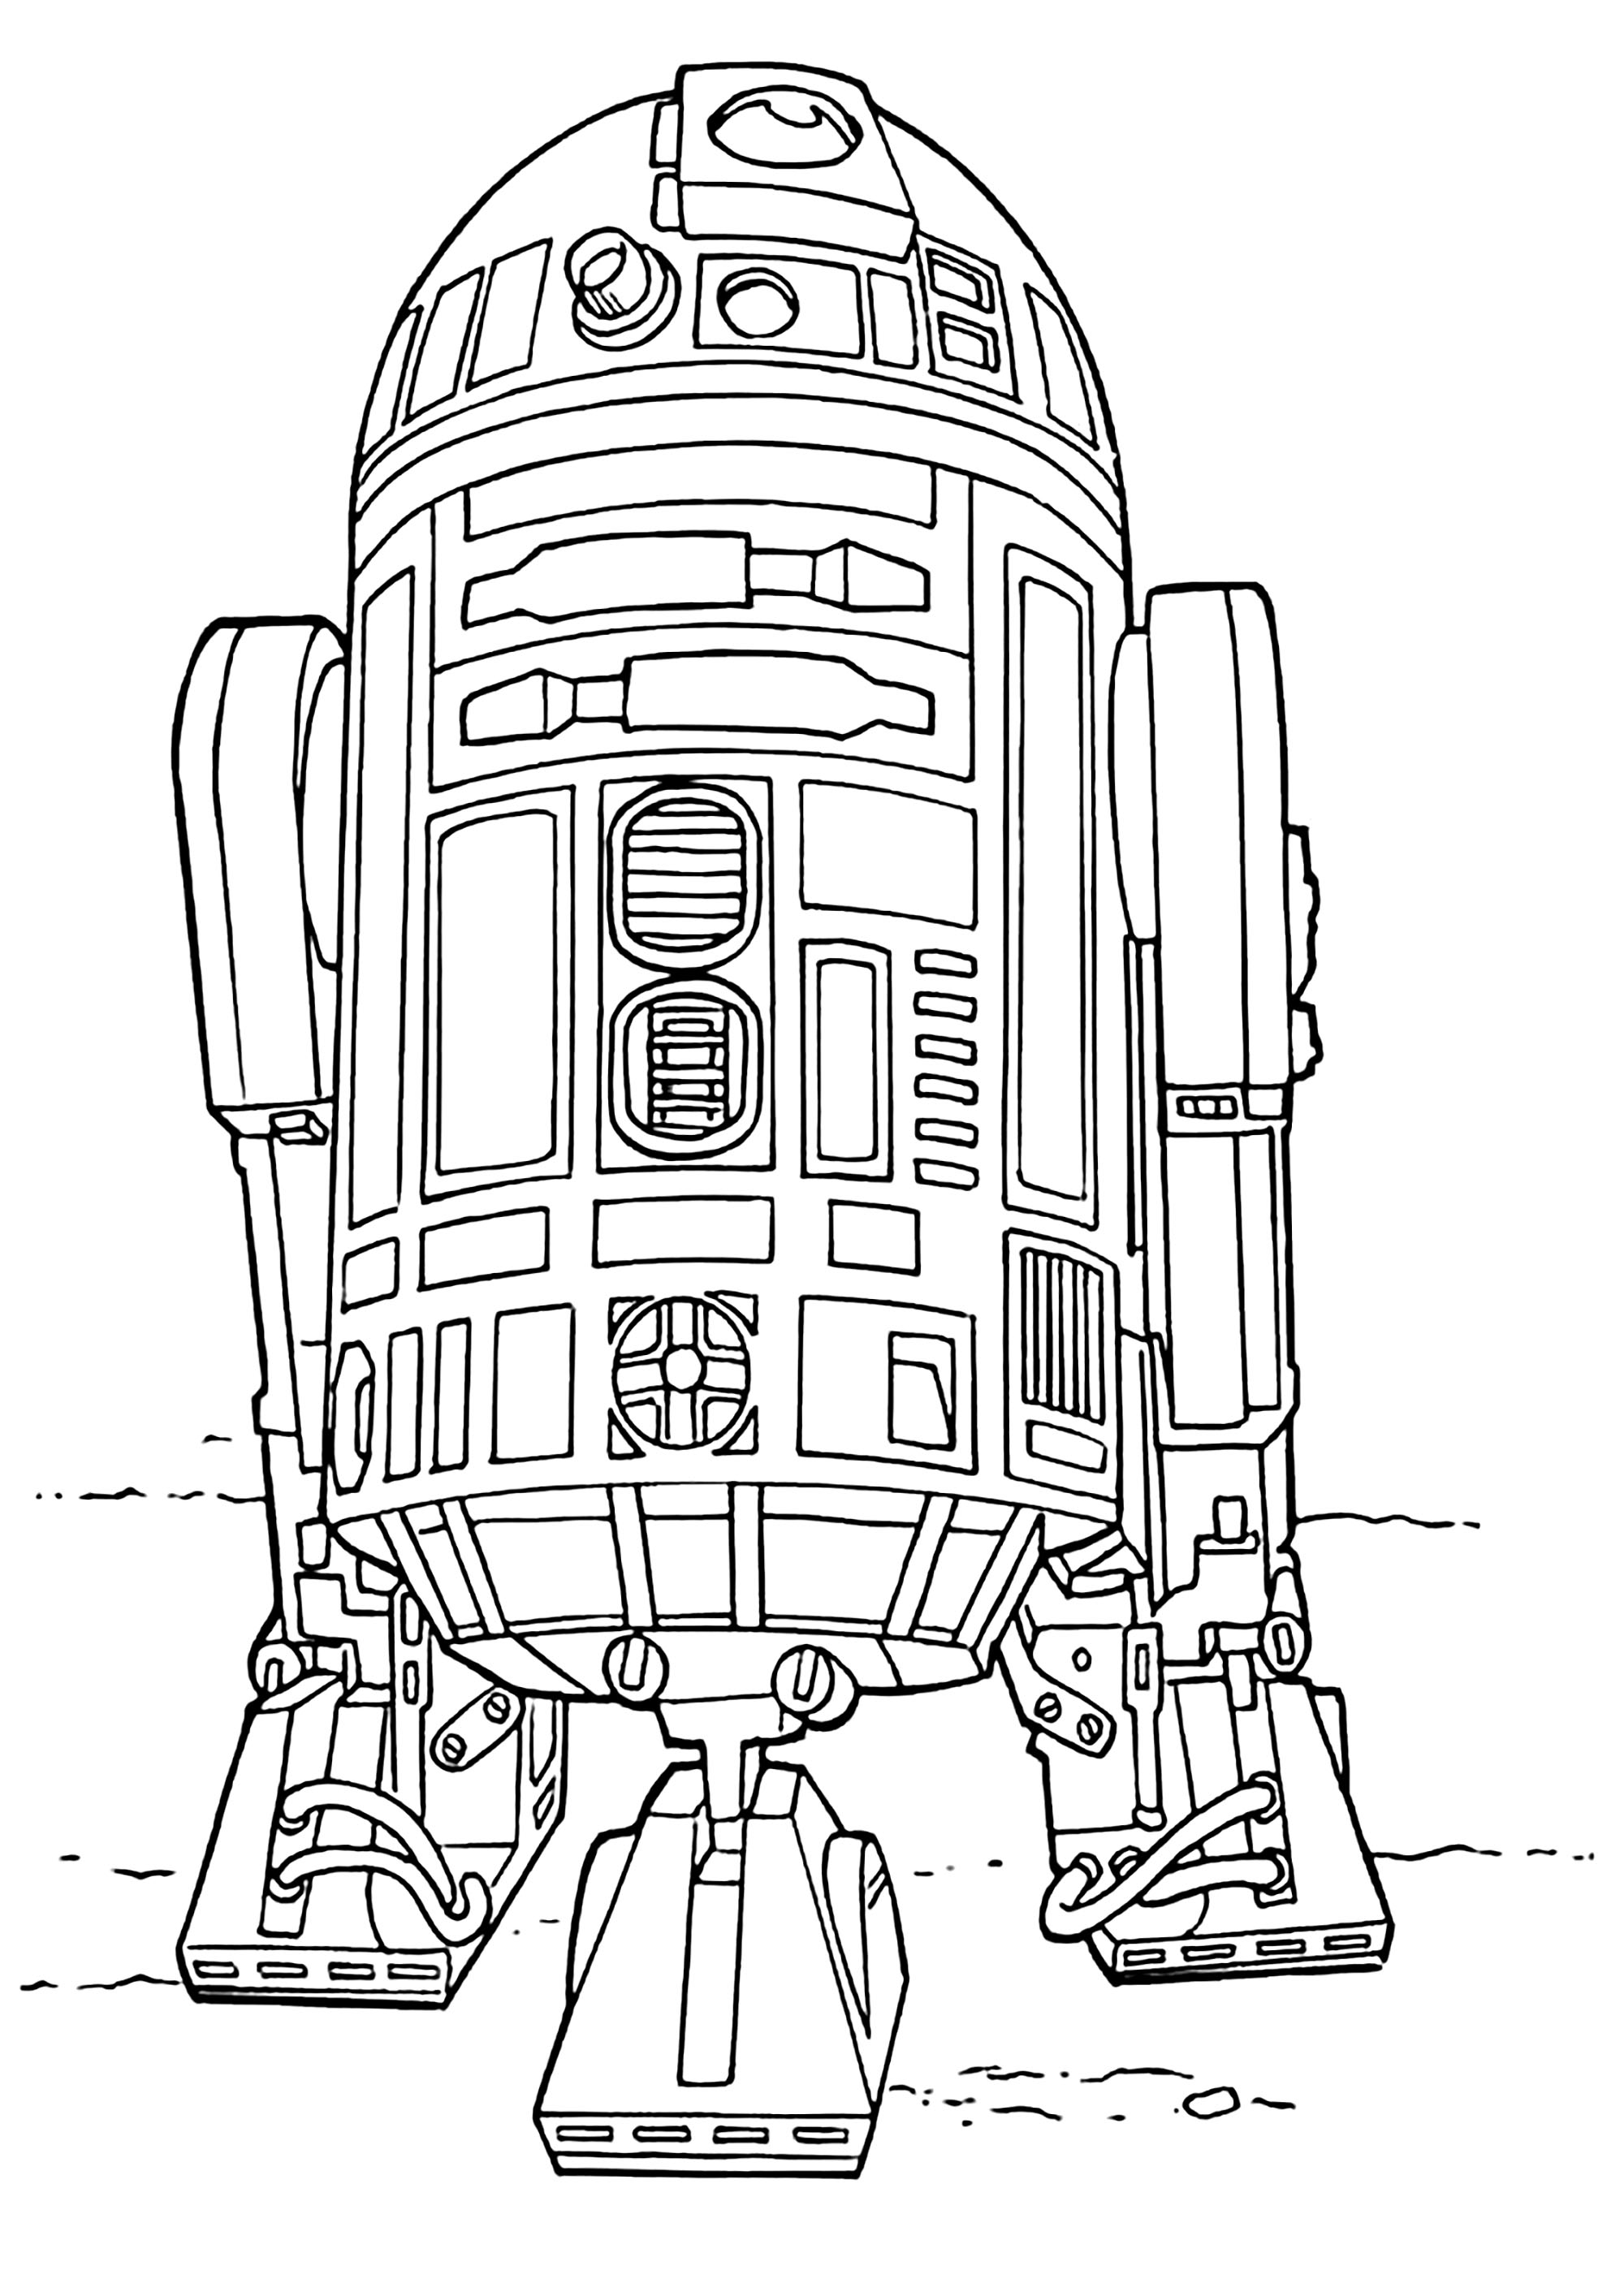 star wars free coloring pages 30 free star wars coloring pages printable star pages wars free coloring